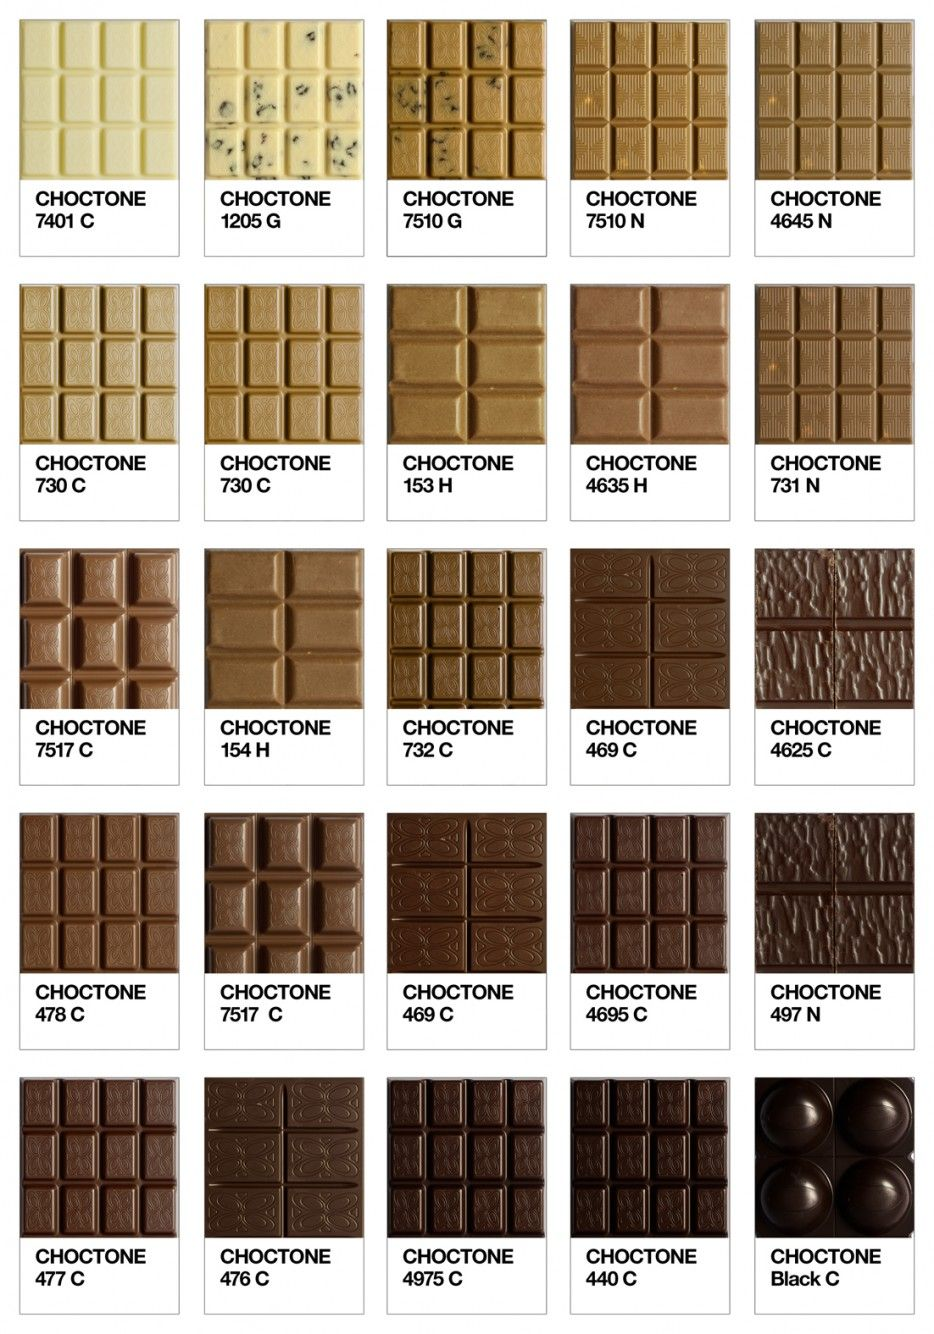 Choctone Chocolate Tone Of Pantone Colour Chart  Chocolate